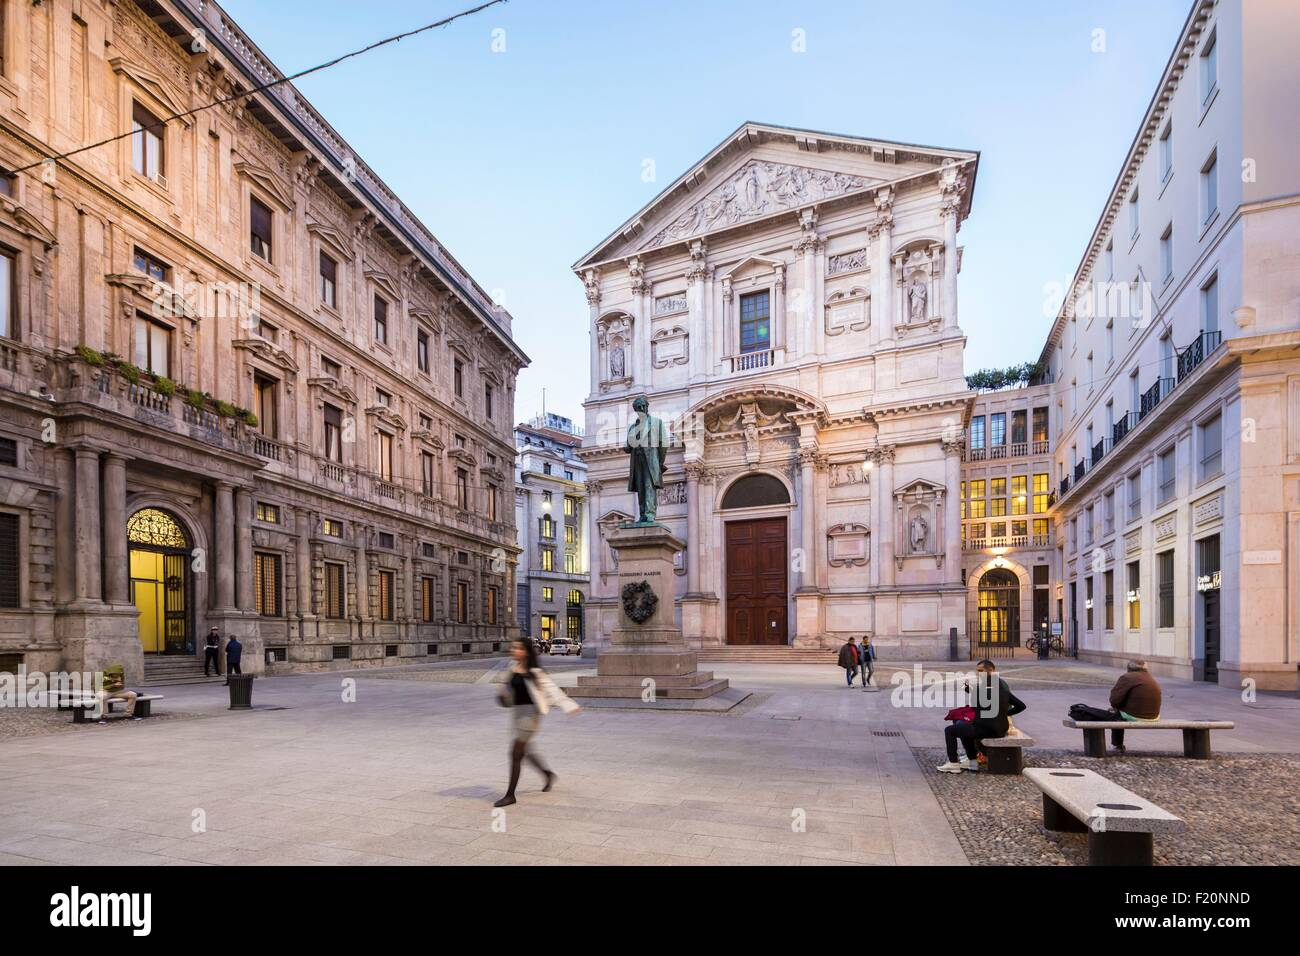 Italy, Lombardy, Milan, jesuit church San Fedele place San Fedele and Alessandro Manzoni's statue - Stock Image